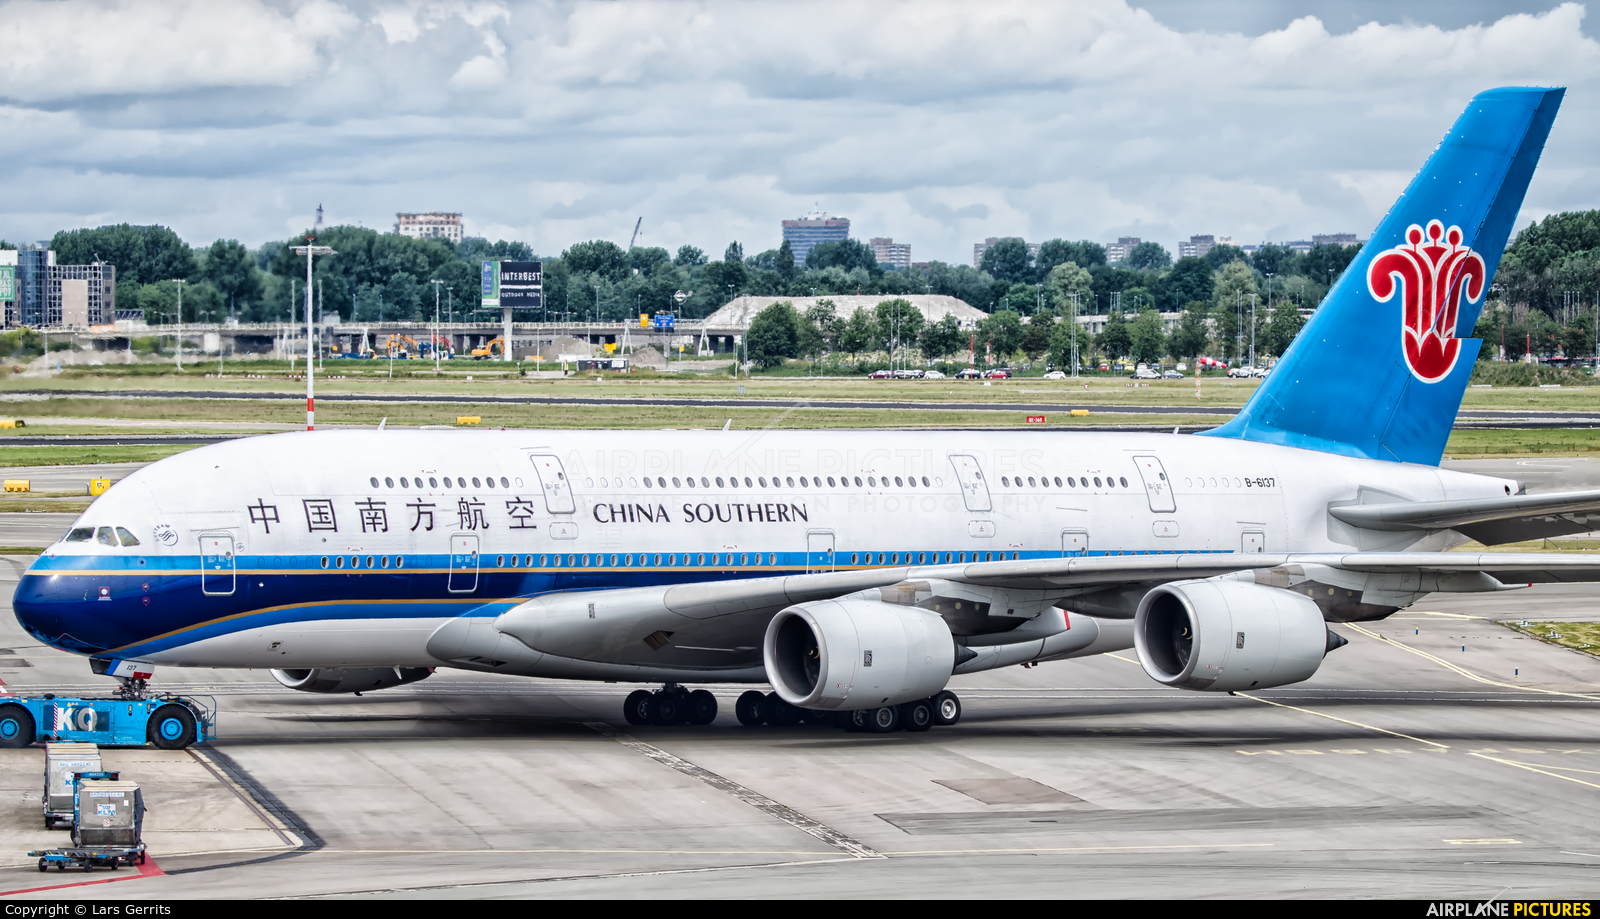 China Southern Airlines B-6137 aircraft at Amsterdam - Schiphol